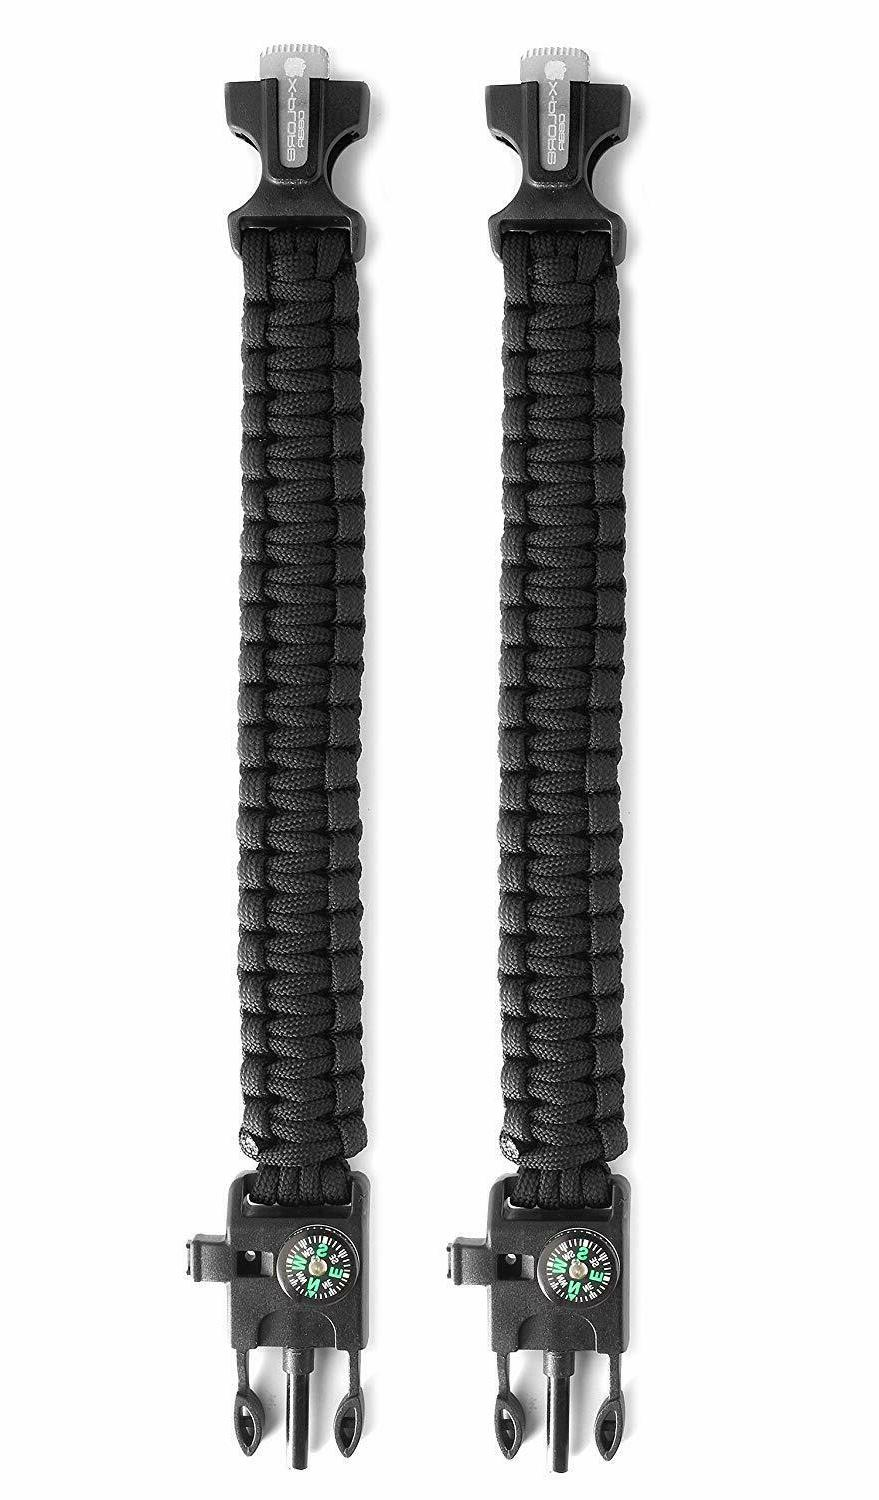 2 Paracord Fire Knife Lot 2